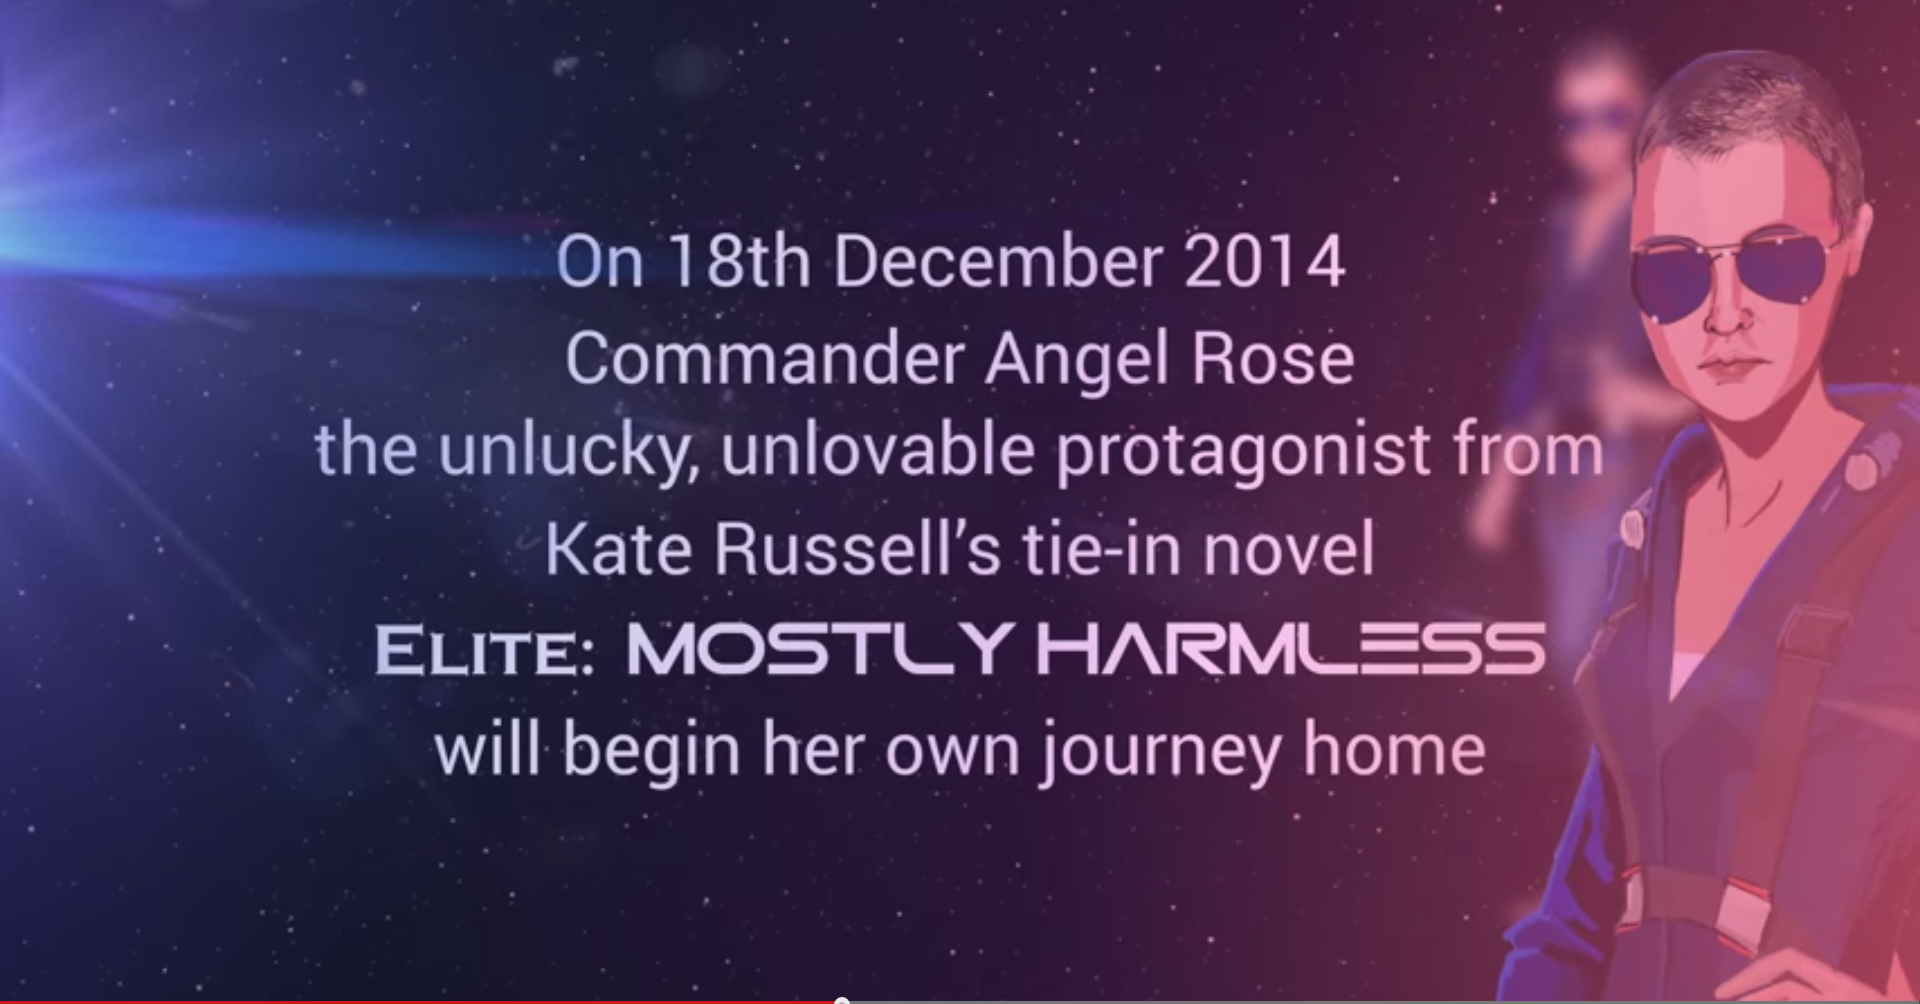 NEWS: Join Angel Rose as she enters #EliteDangerous tonight at 7pm